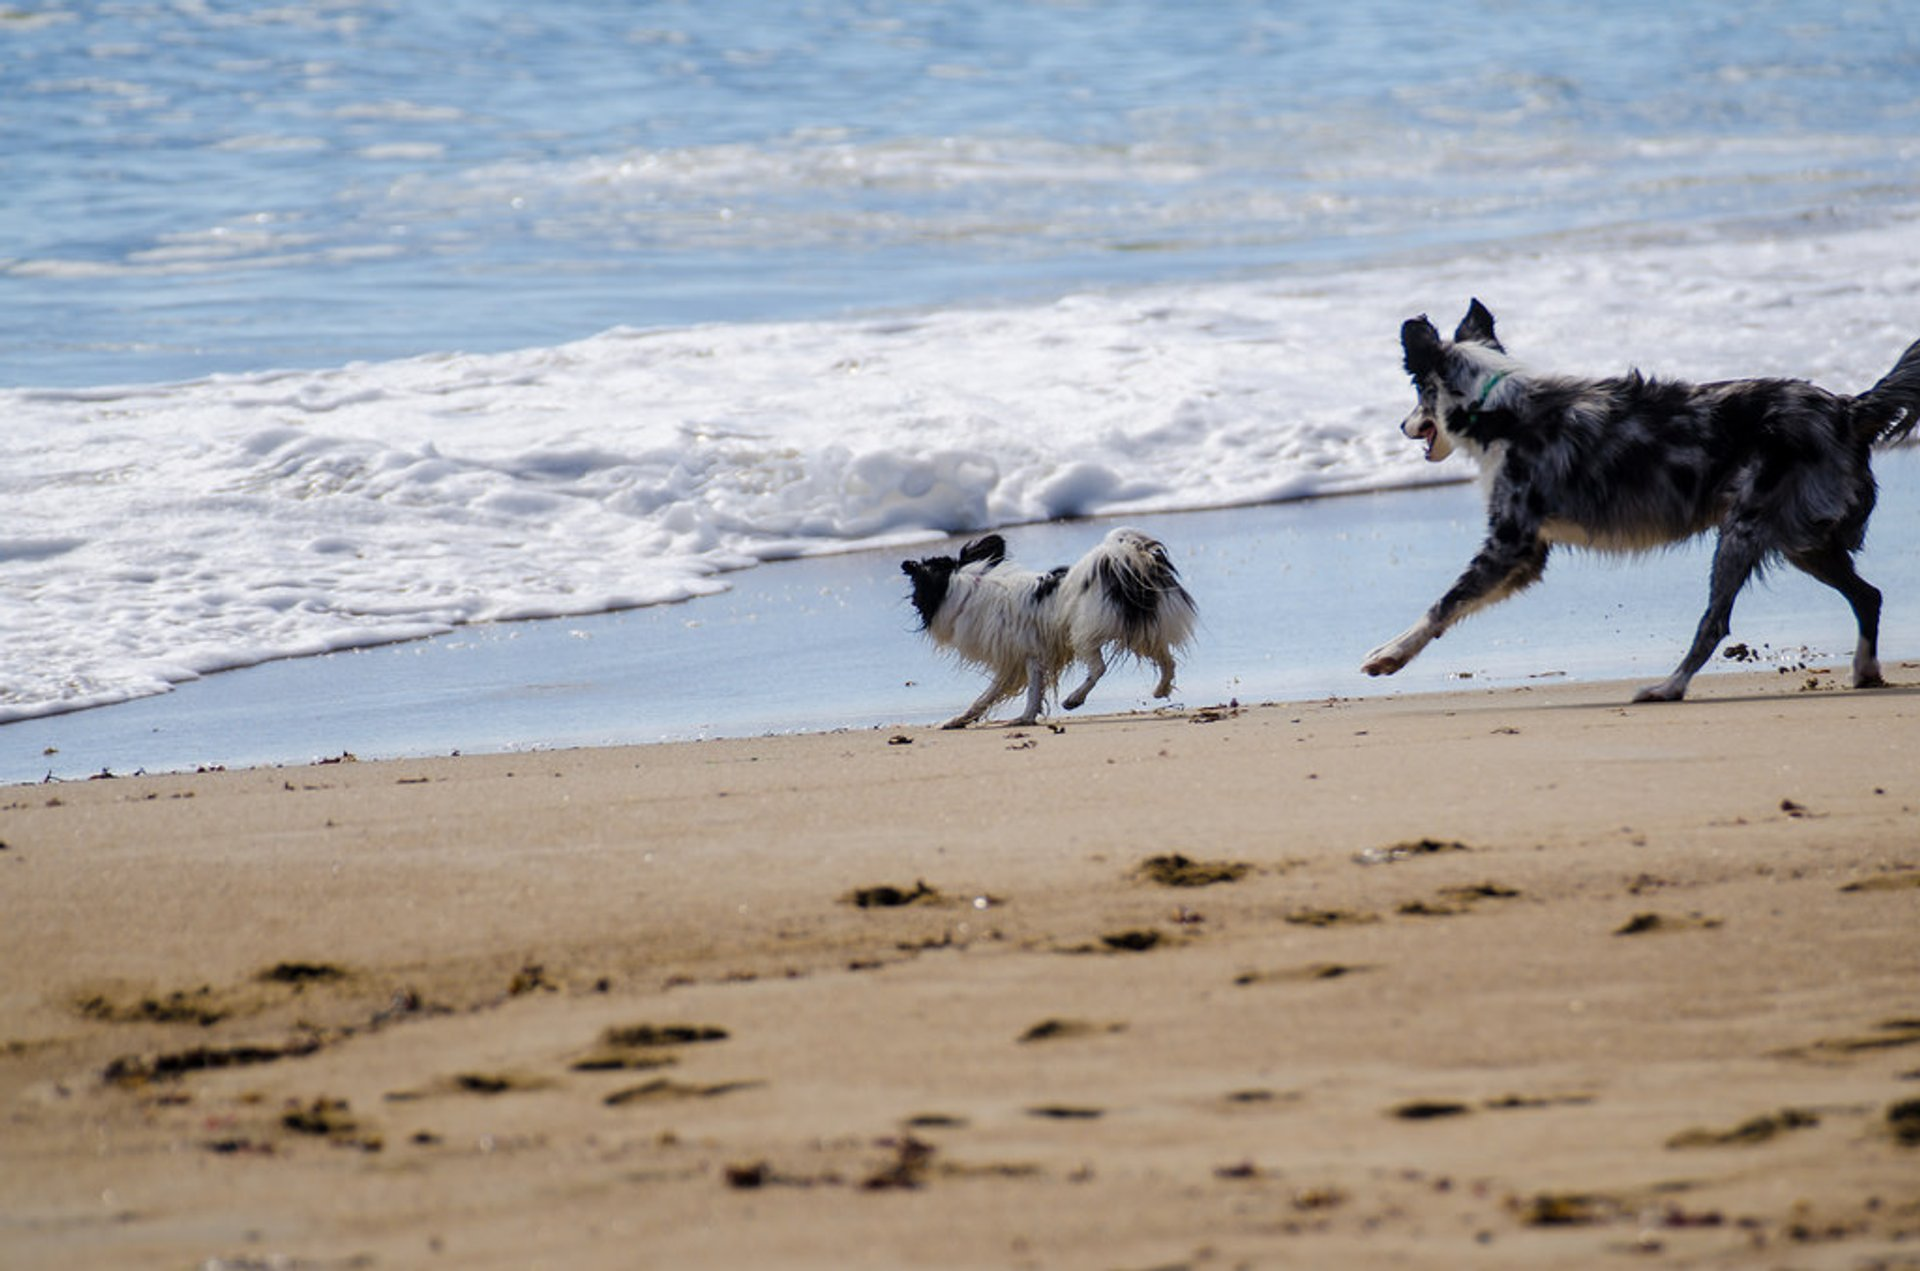 Dogs allowed on the beach from mid-October to mid-April 2020